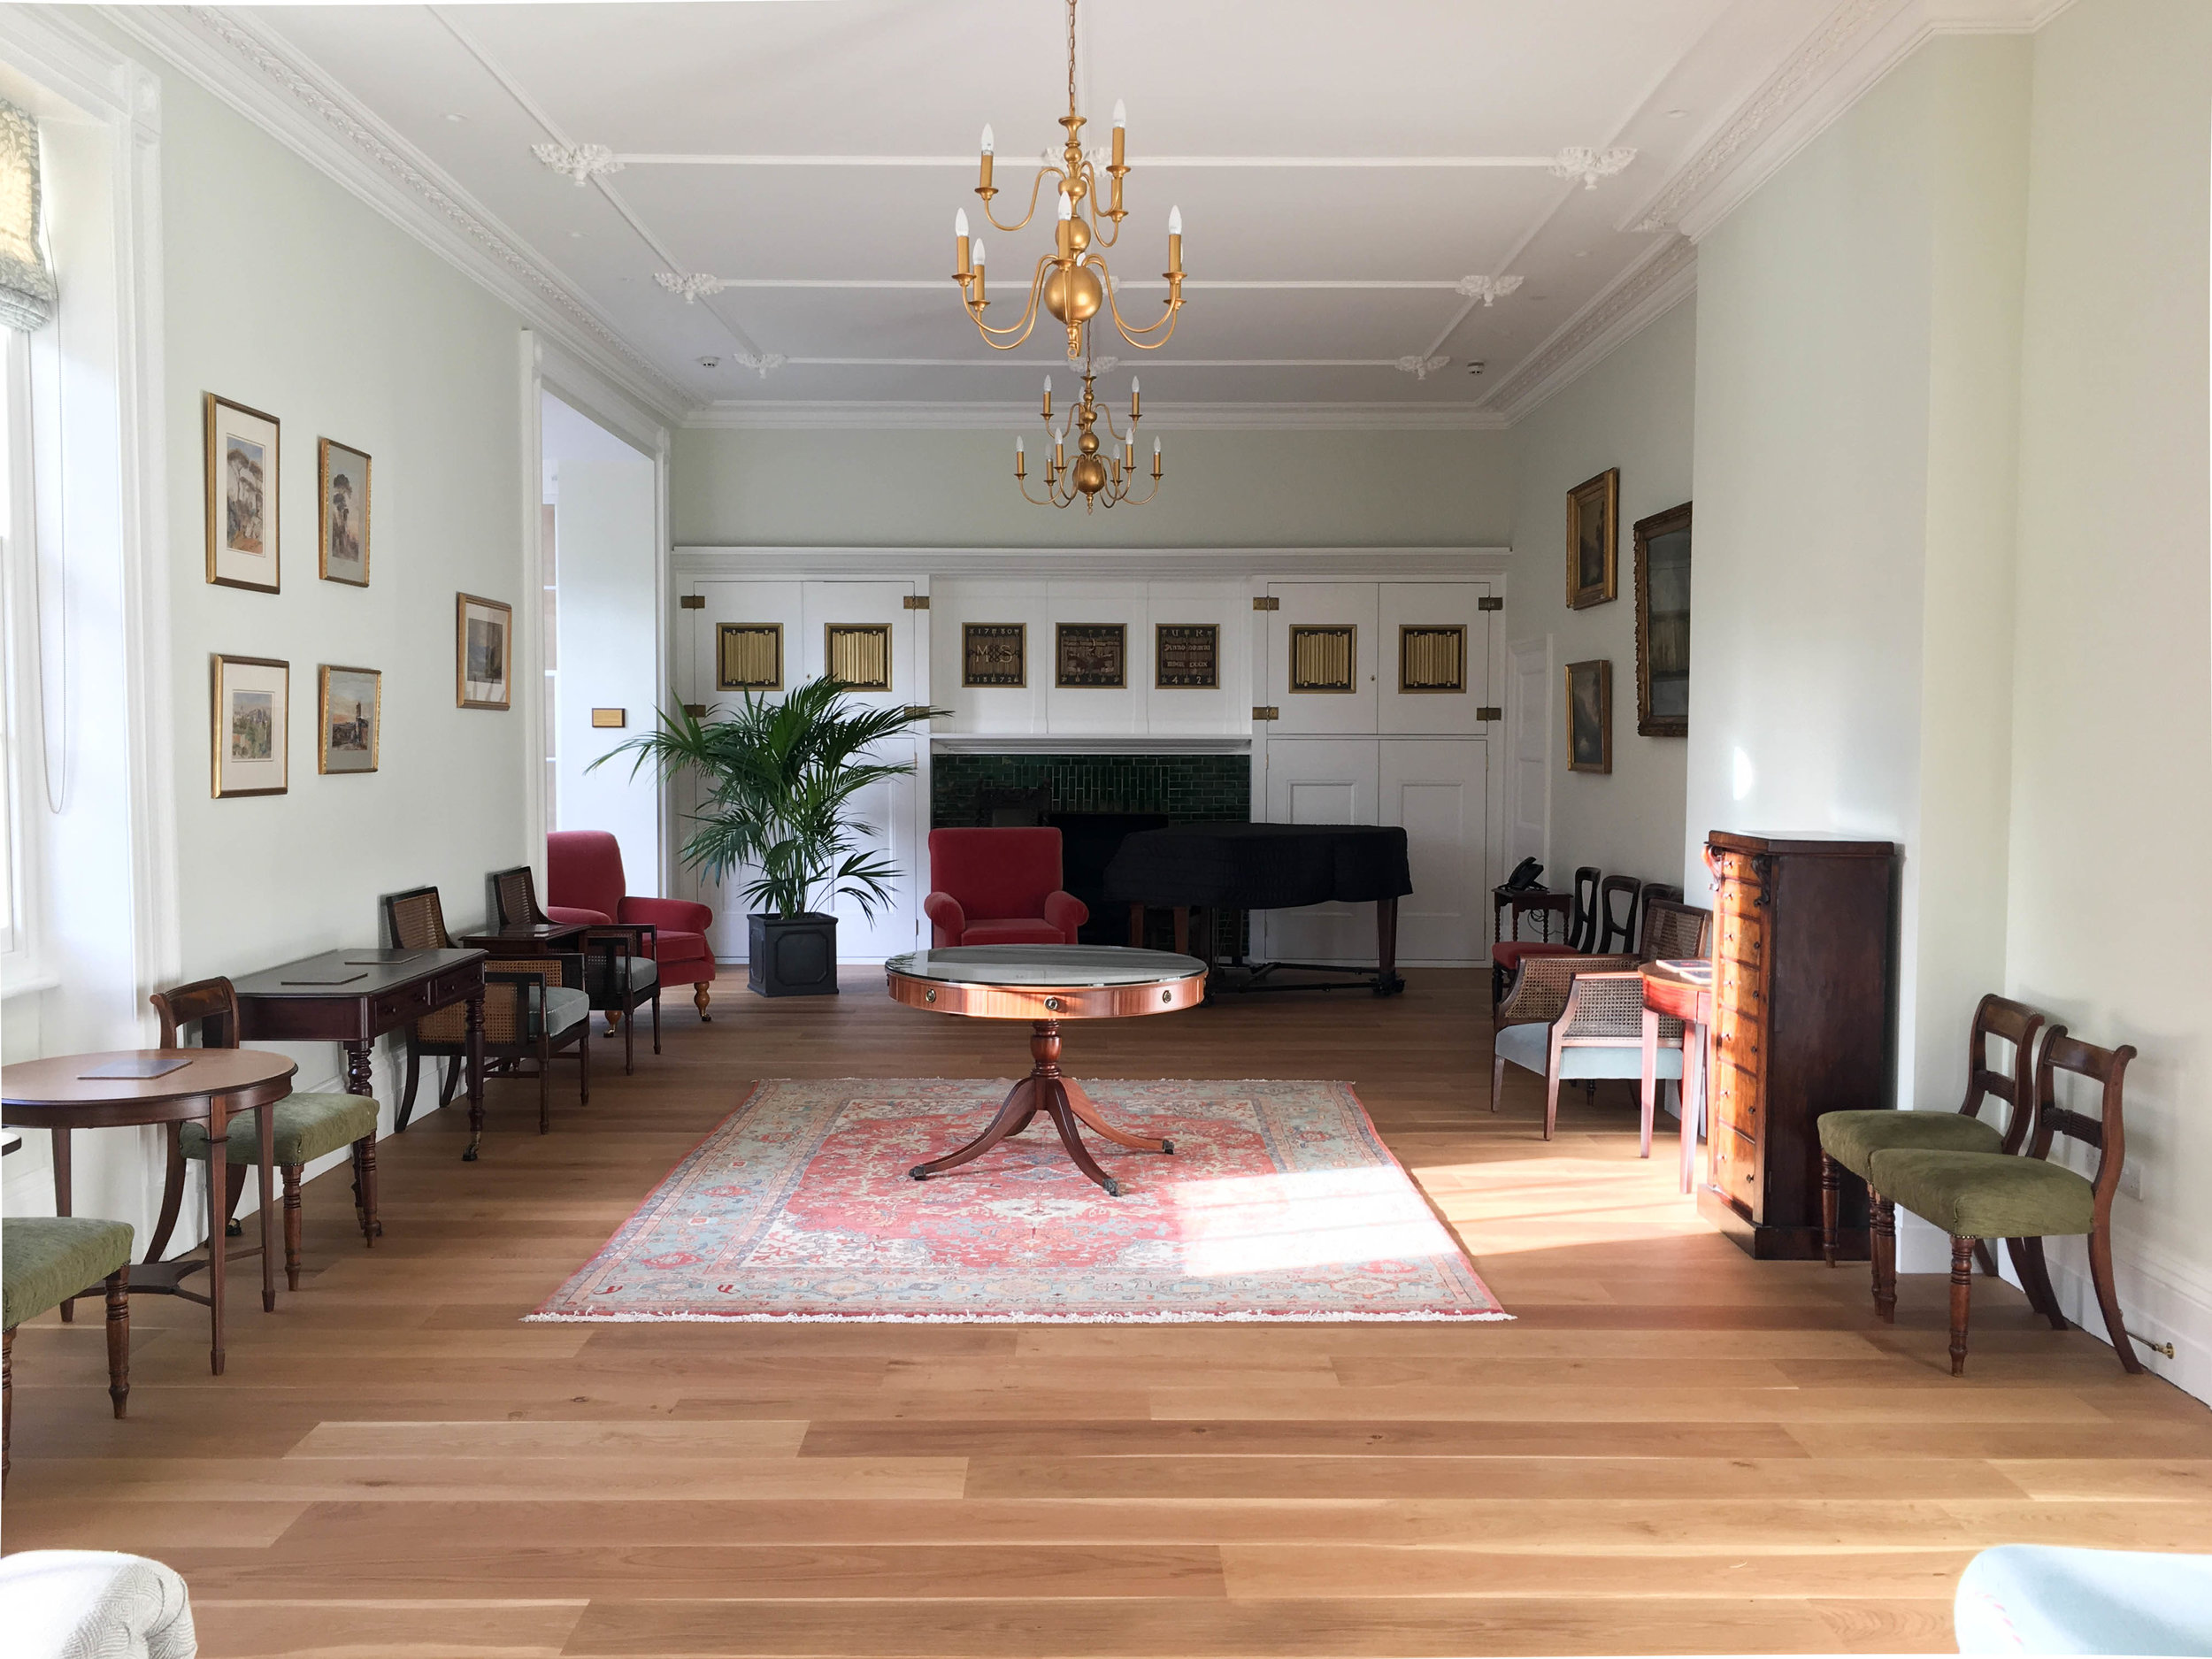 Mary Somerville Room, looking north. New ceiling by Cliveden Conservation